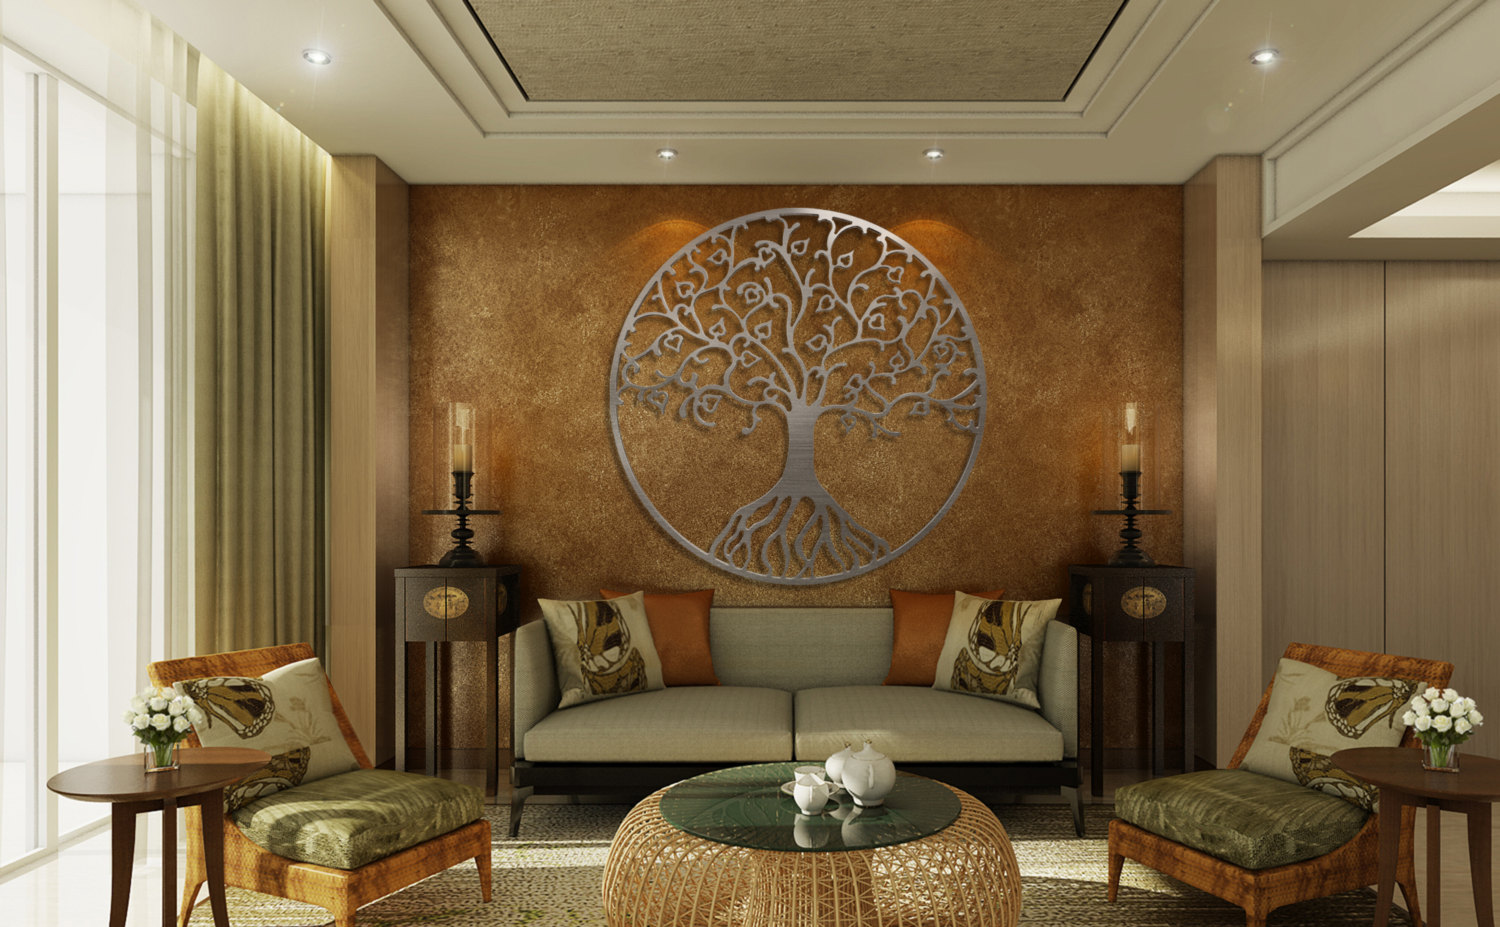 Large Iron Wall Decor Design